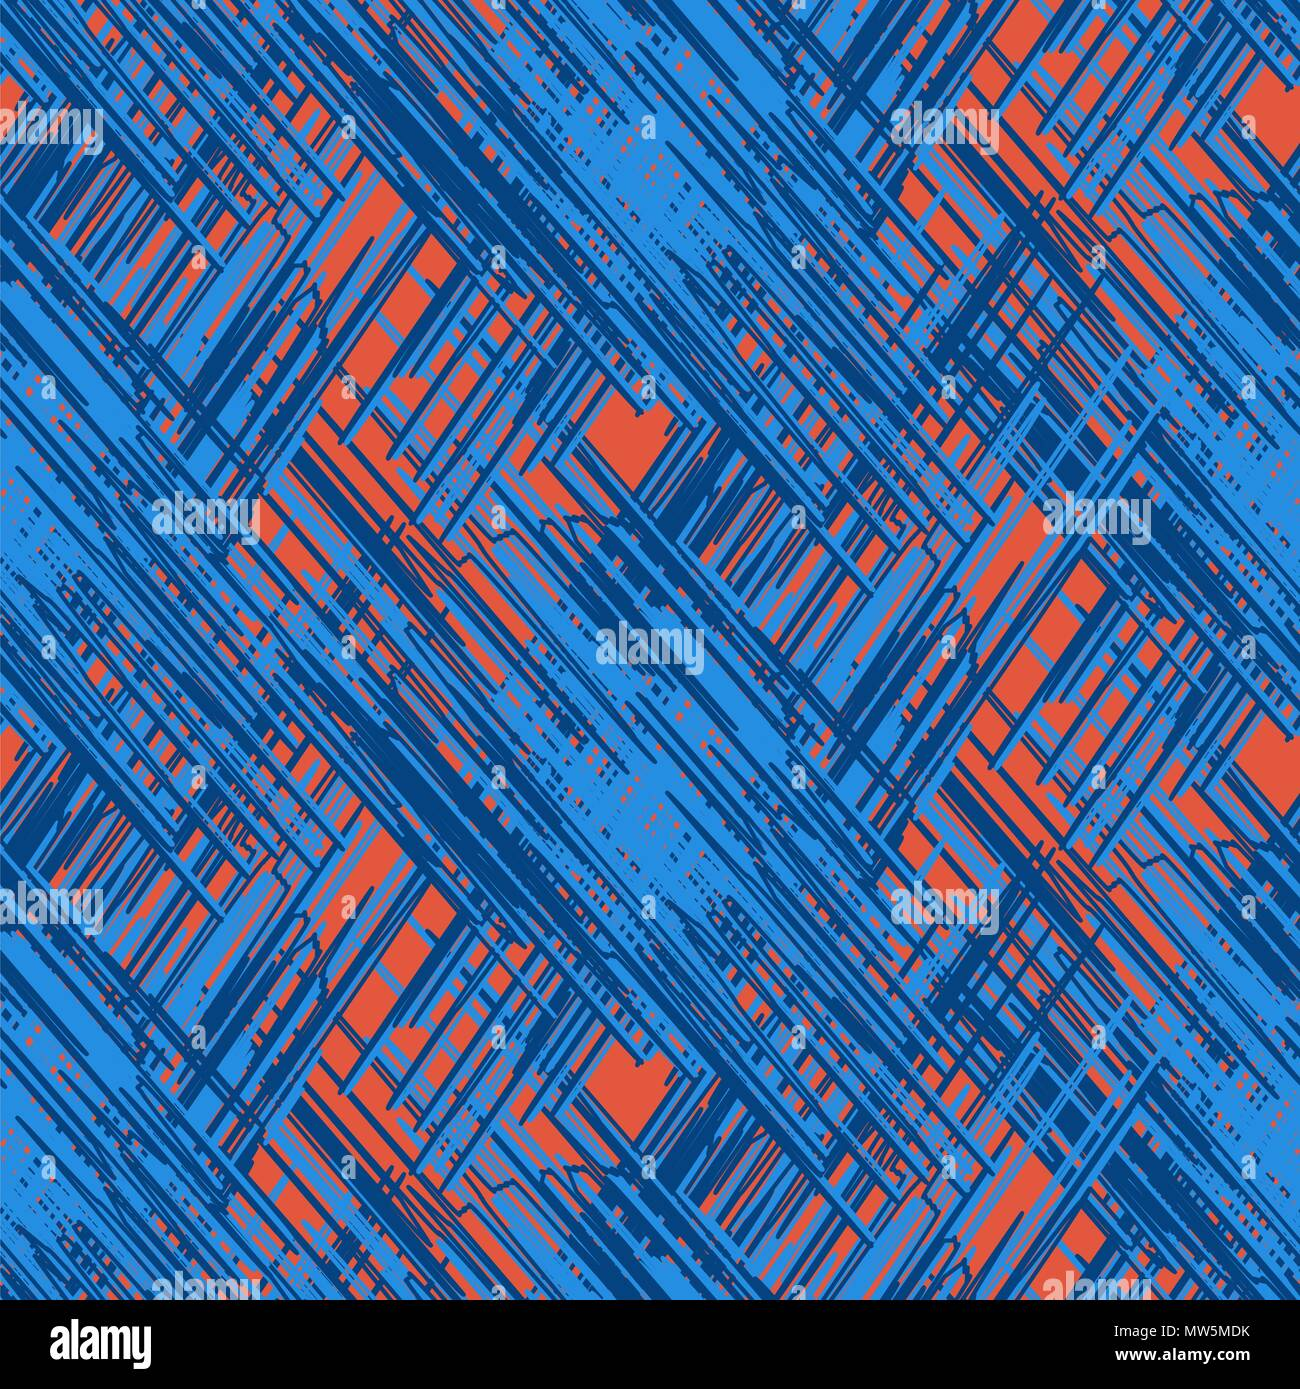 Vector grunge scribble strokes seamless pattern. - Stock Image